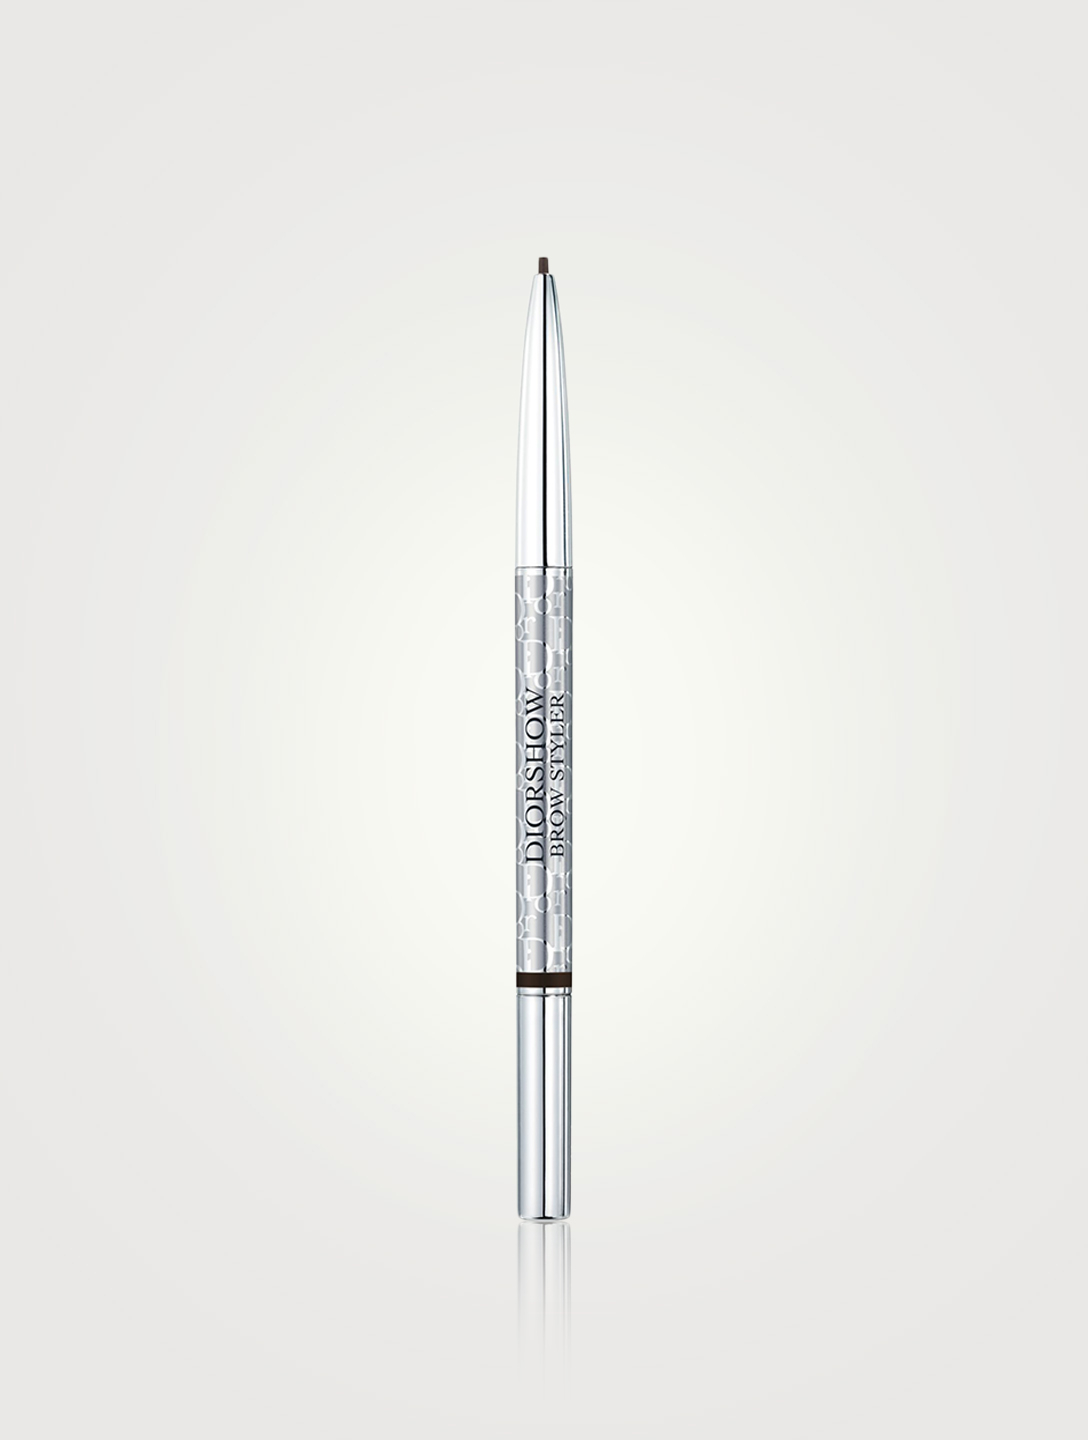 DIOR Diorshow Brow Styler Beauty Black